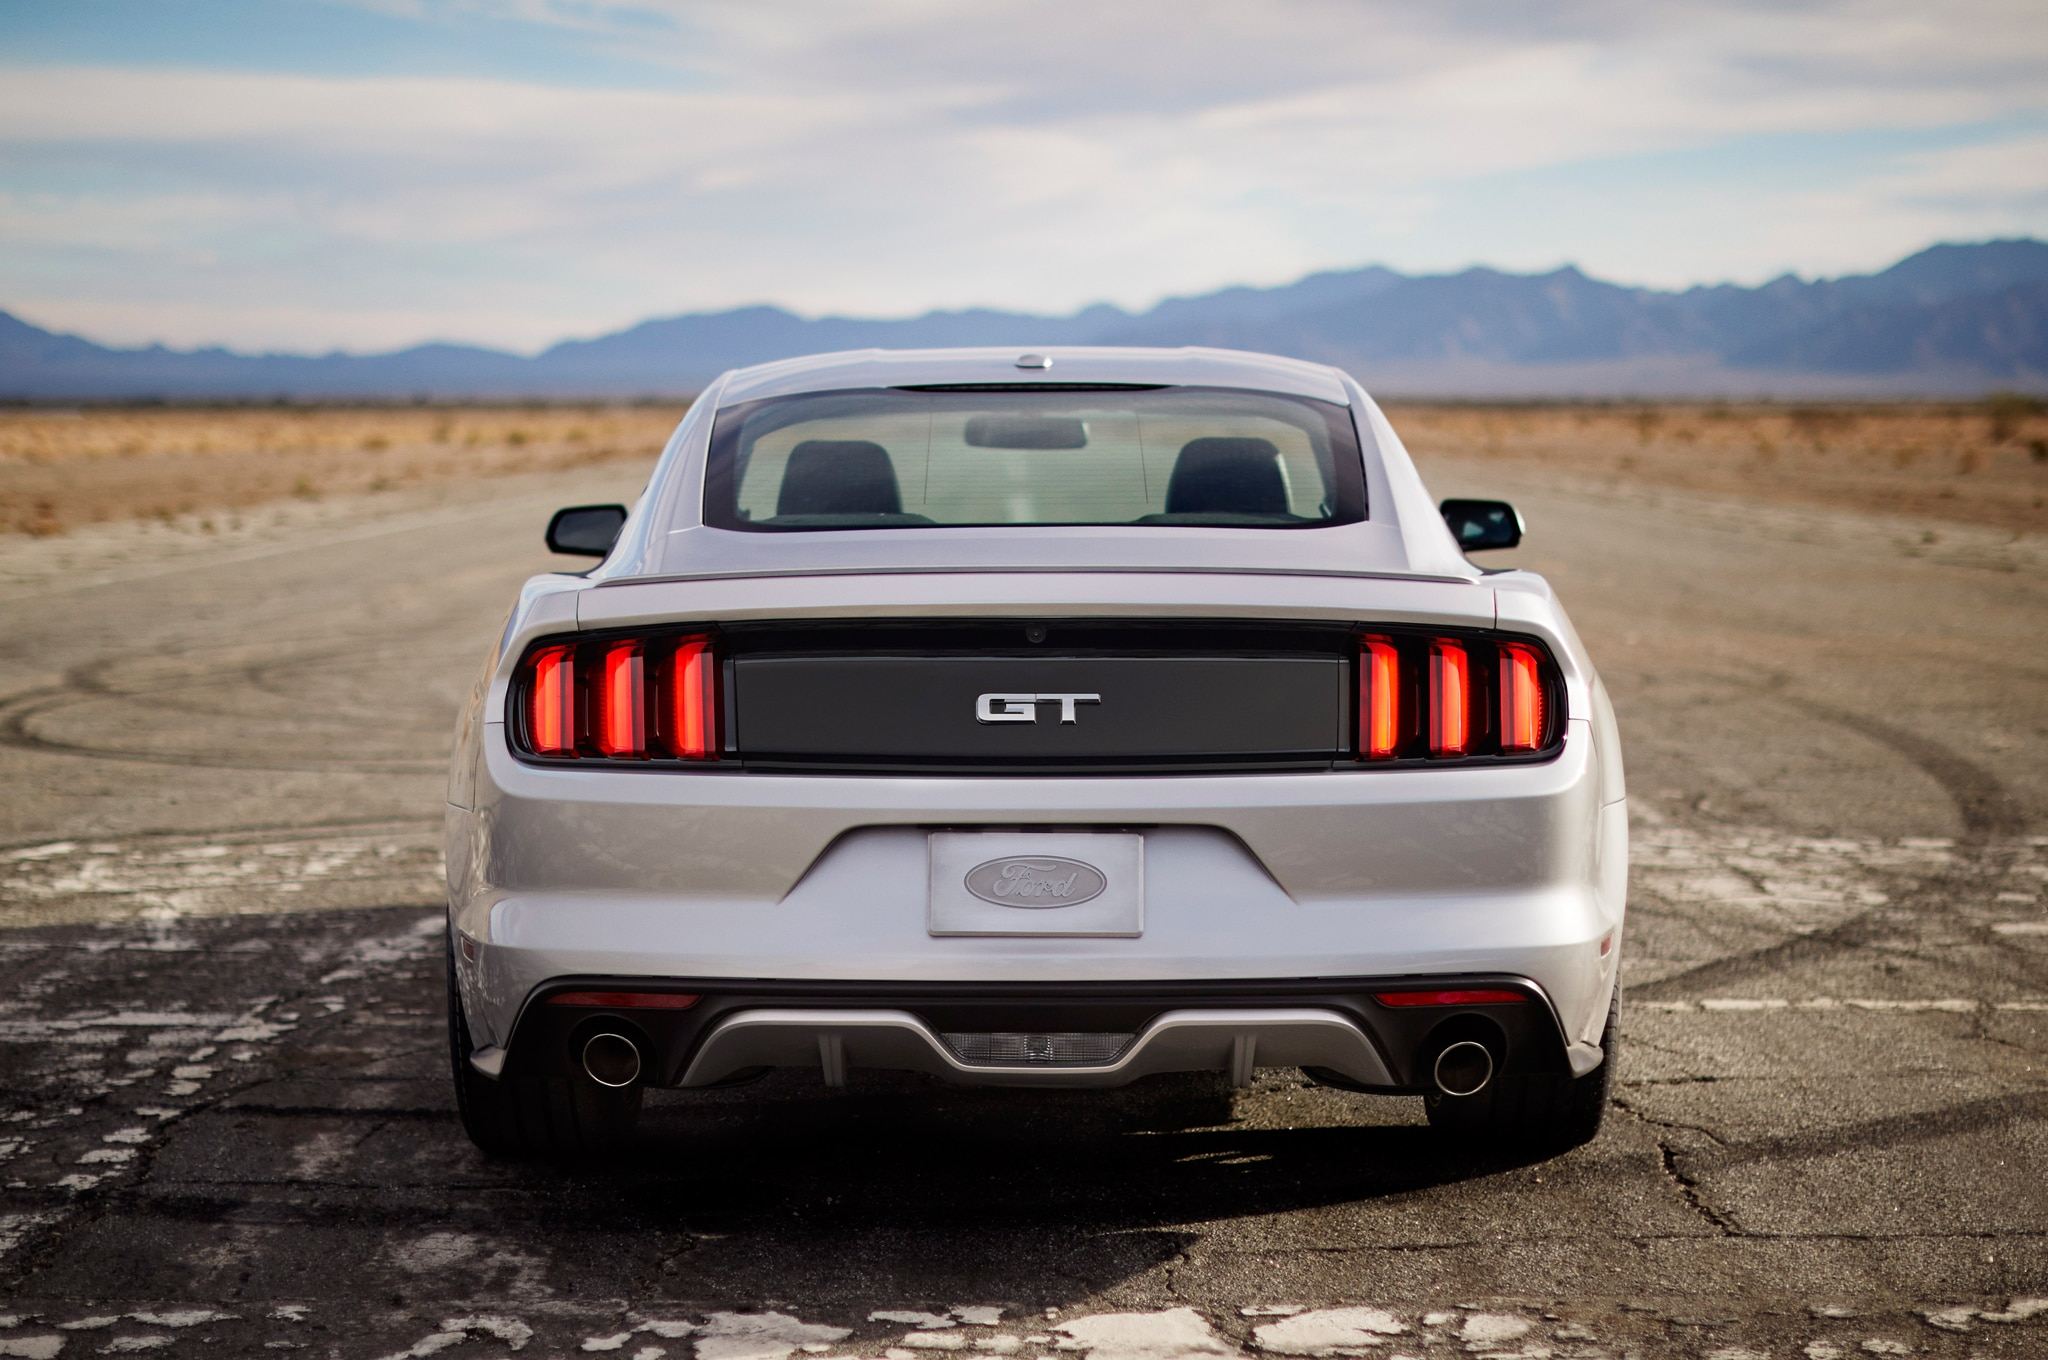 Ford Mustang Rear Taillights